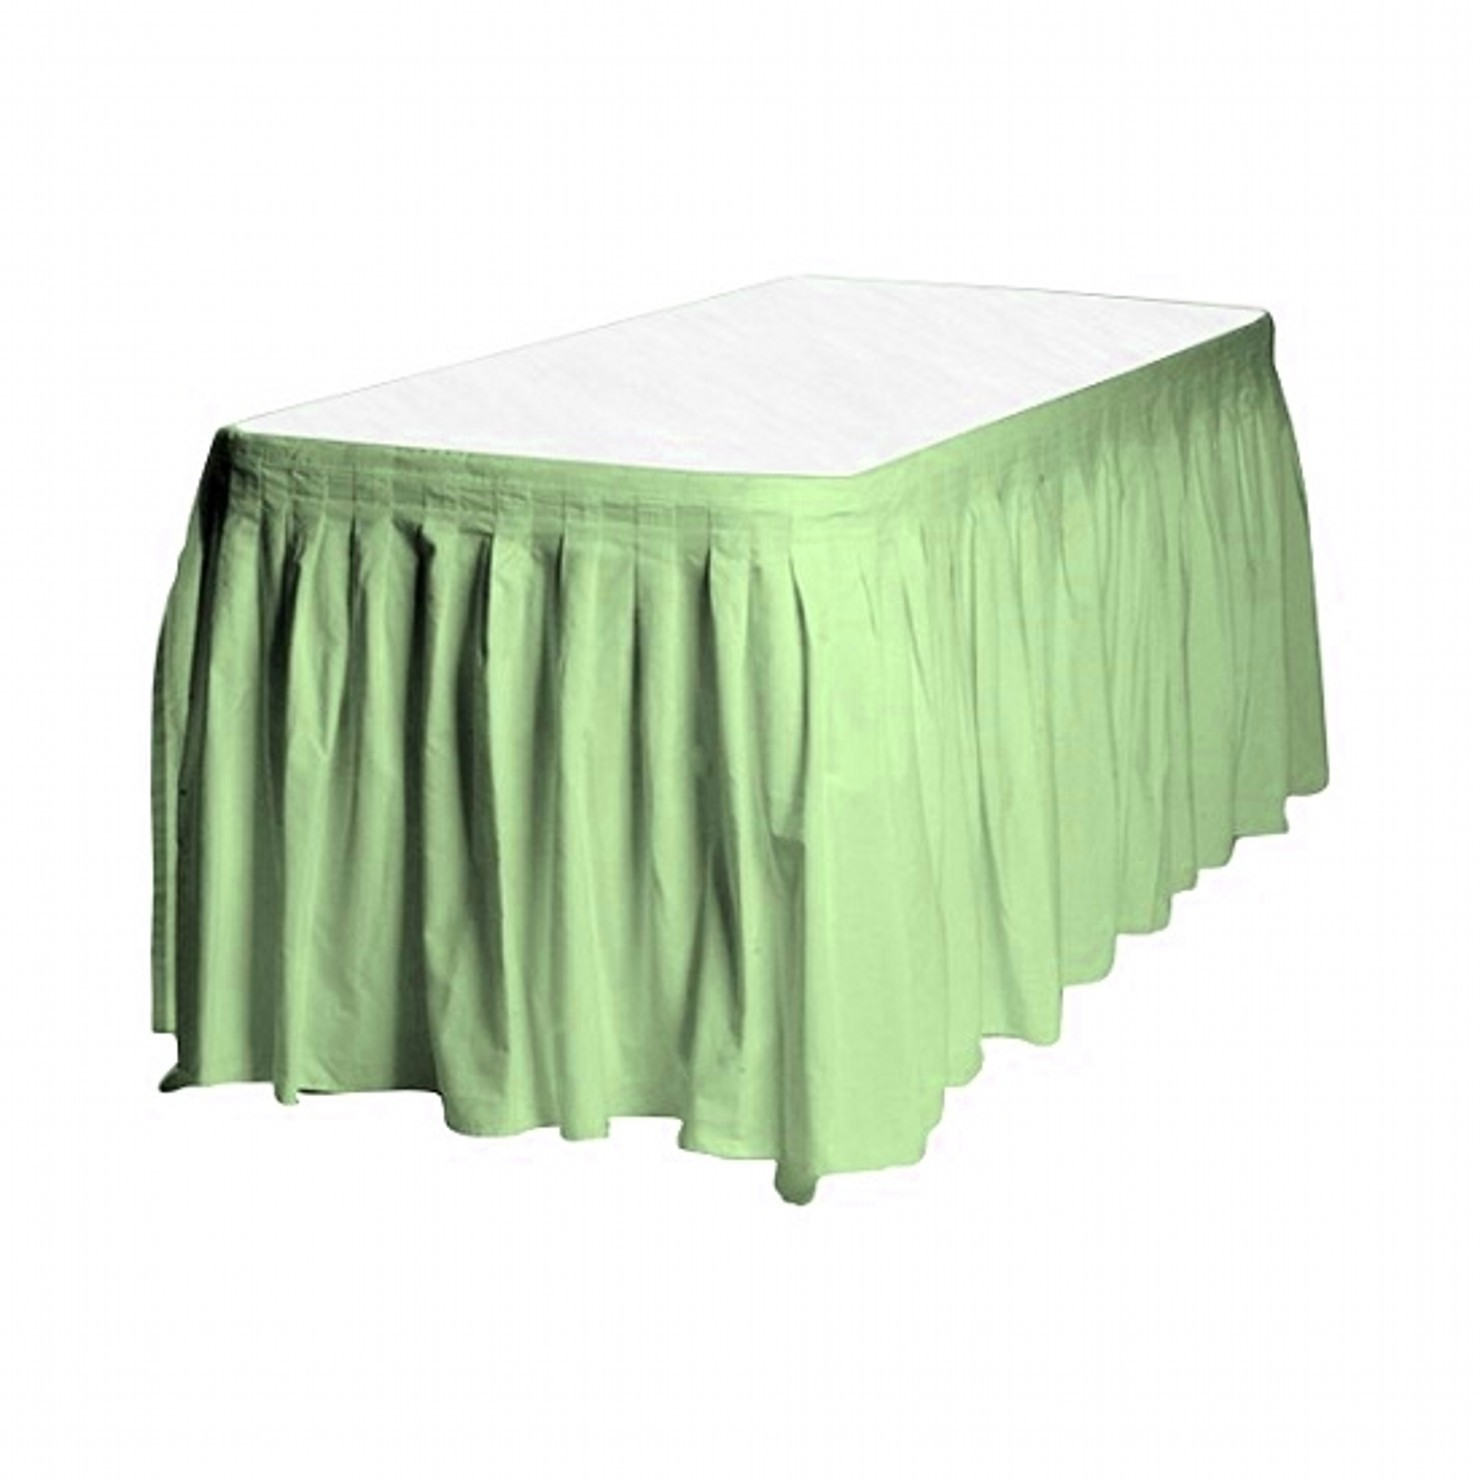 Touch of Color Easy Stick Plastic Table Skirt, 14-Feet, citrus green